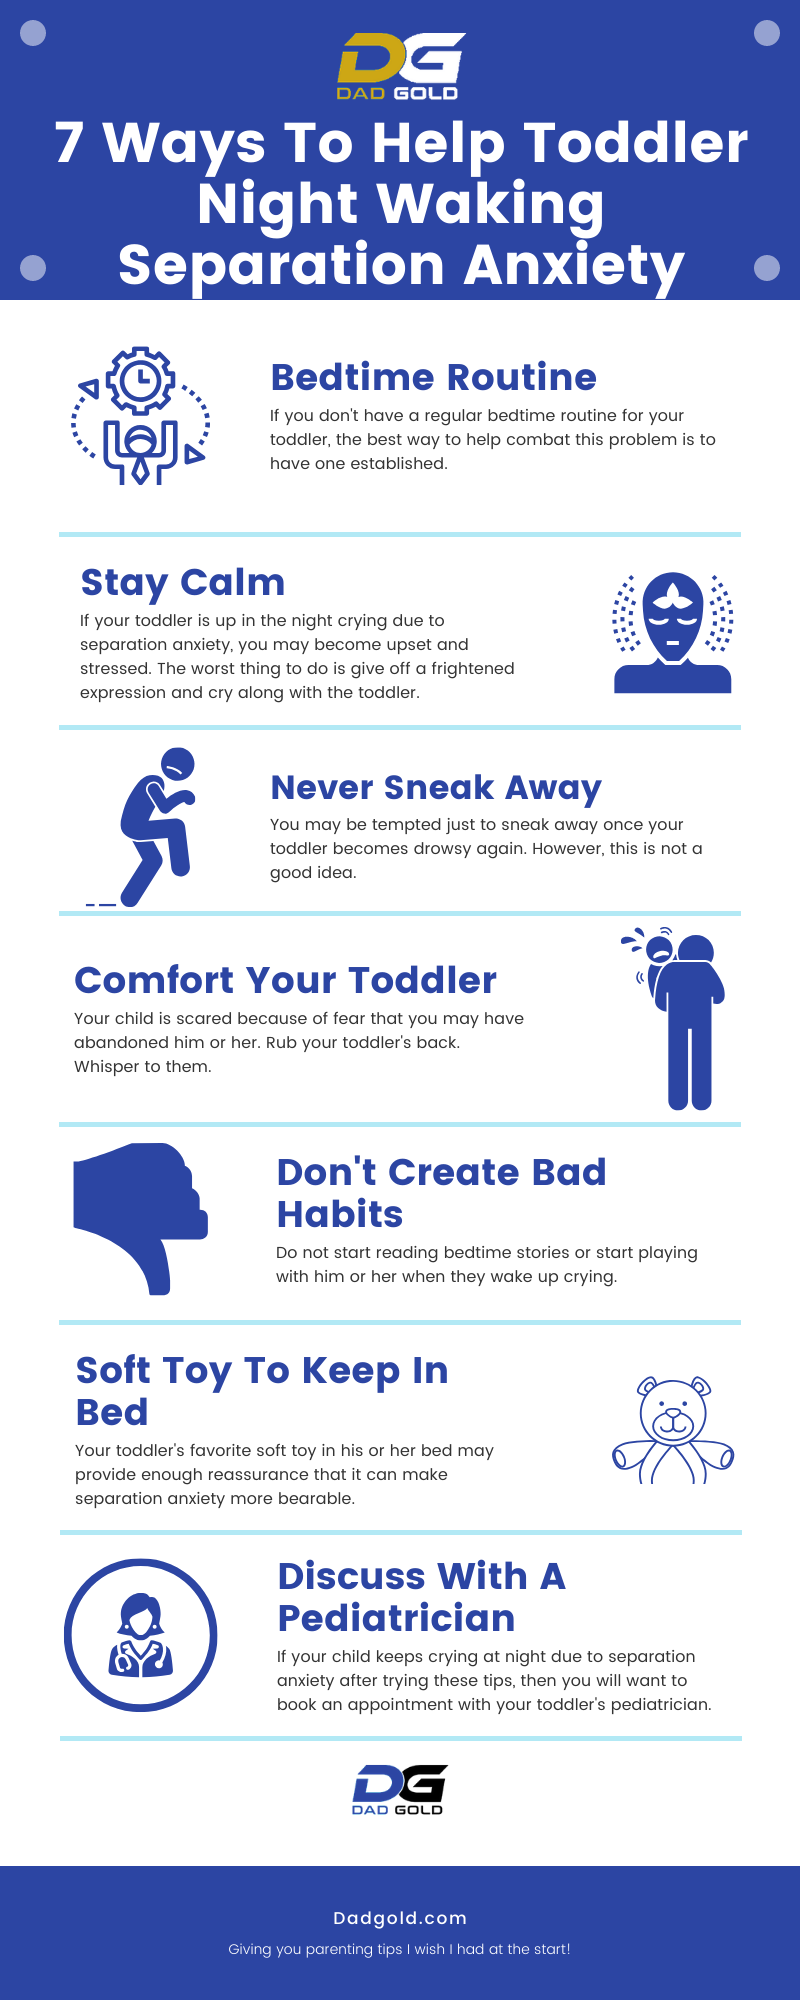 Toddler Night Waking Separation Anxiety Infographic